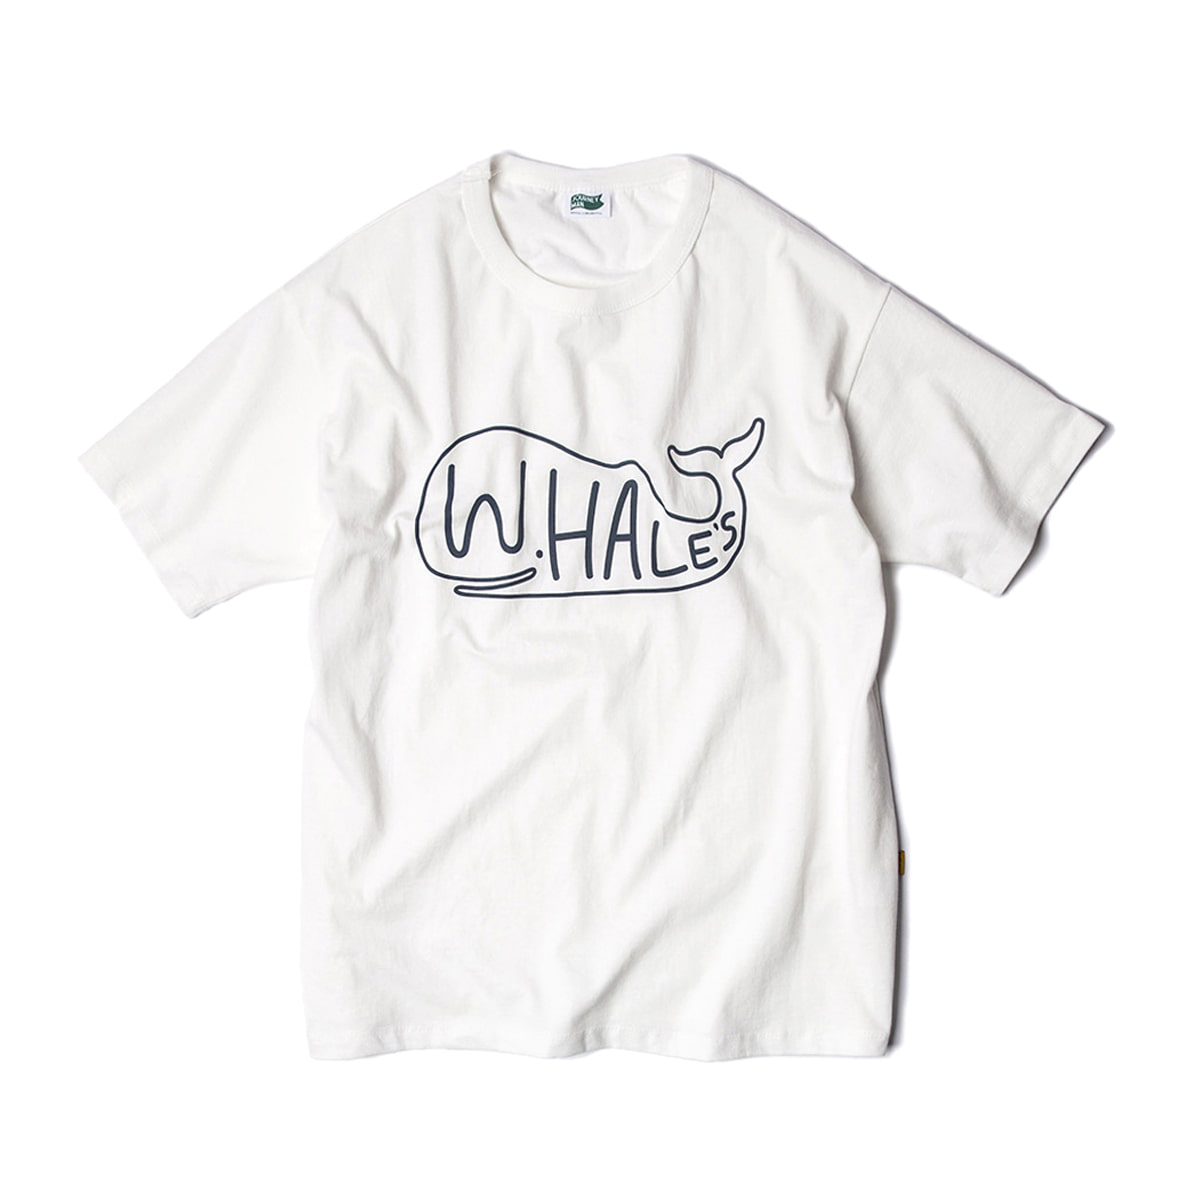 [JOURNEYMAN] WHALE'S SURFER TEAM BIG LOGO T-SHIRTS 'OFF WHITE'